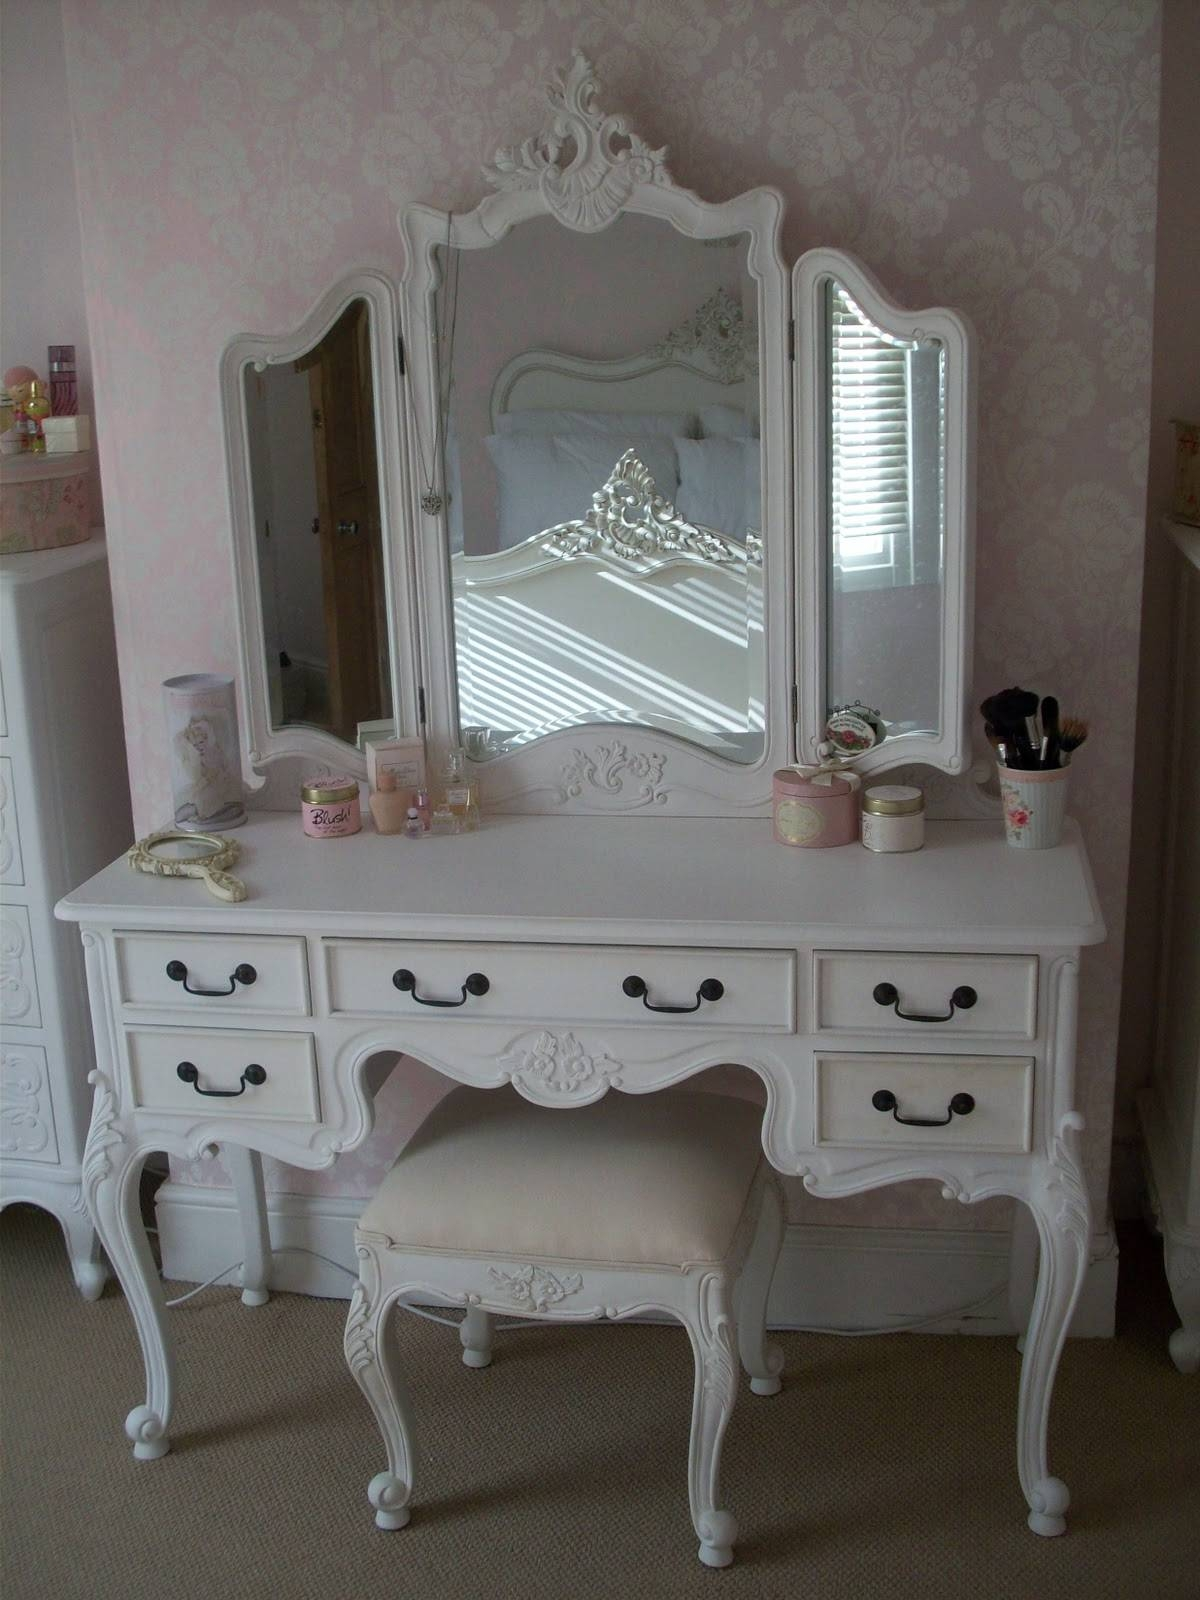 Bedroom Dressing Table Designs With Full Length Mirror For Girls in Antique Triple Mirrors (Image 5 of 15)